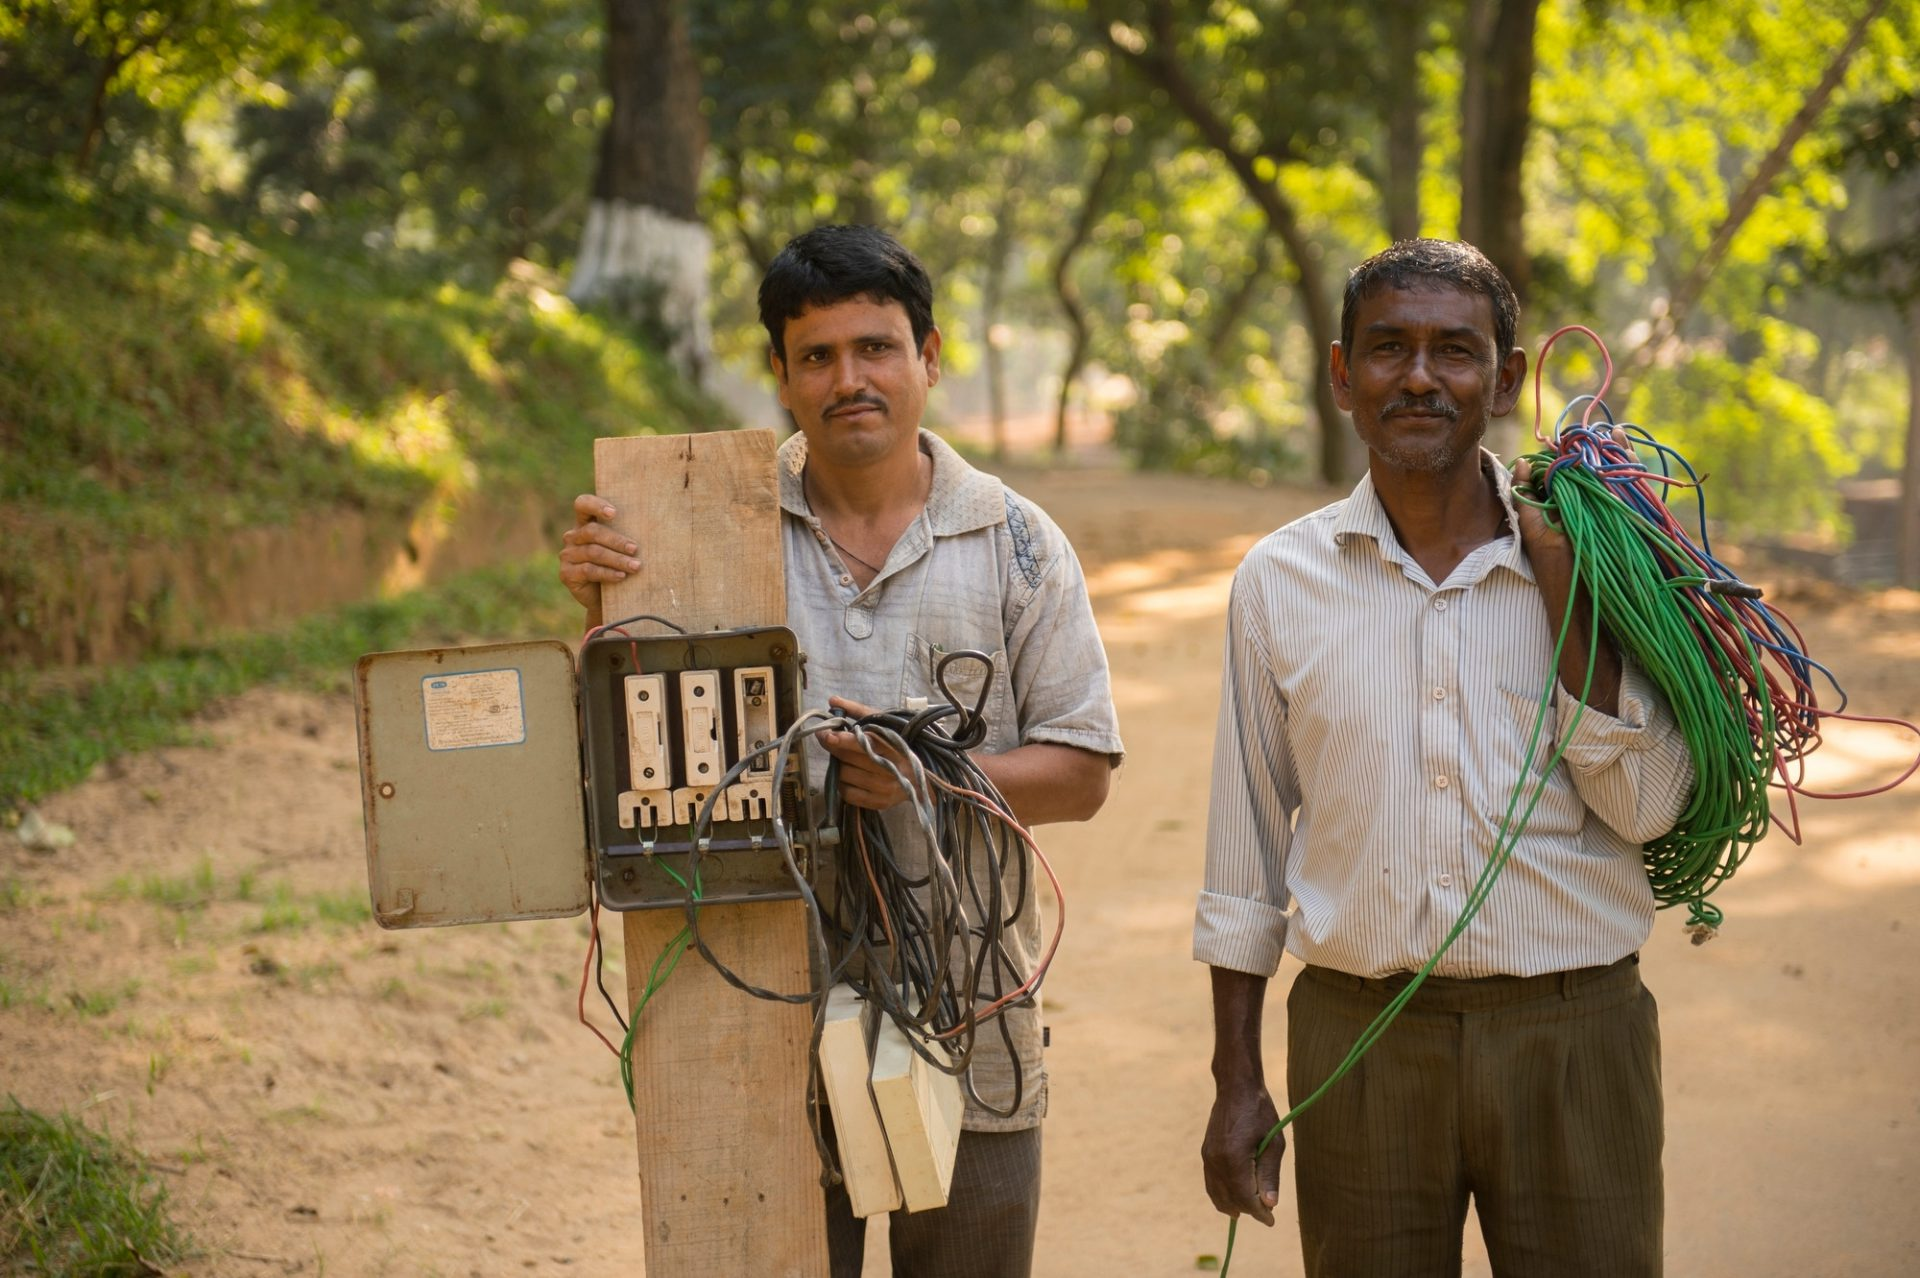 Photo: Two men improvise electricity for a Photo Ark shoot.